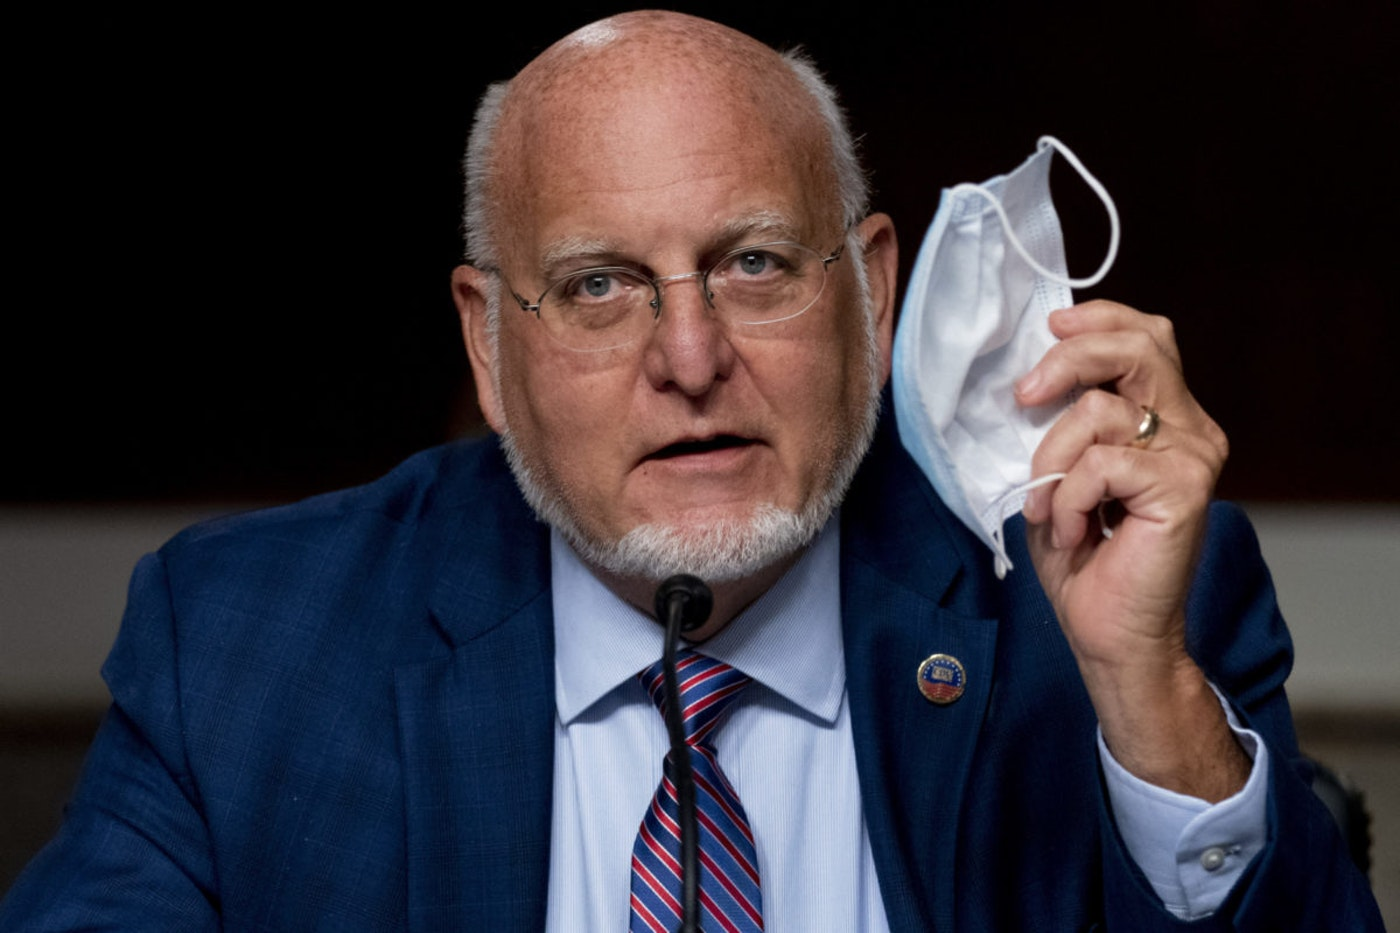 Centers for Disease Control and Prevention Director Dr. Robert Redfield testifies before the Senate on the same day that former Vice President Joe Biden delivered remarks on a coronavirus vaccine plan (AP Photo/Andrew Harnik, Pool).